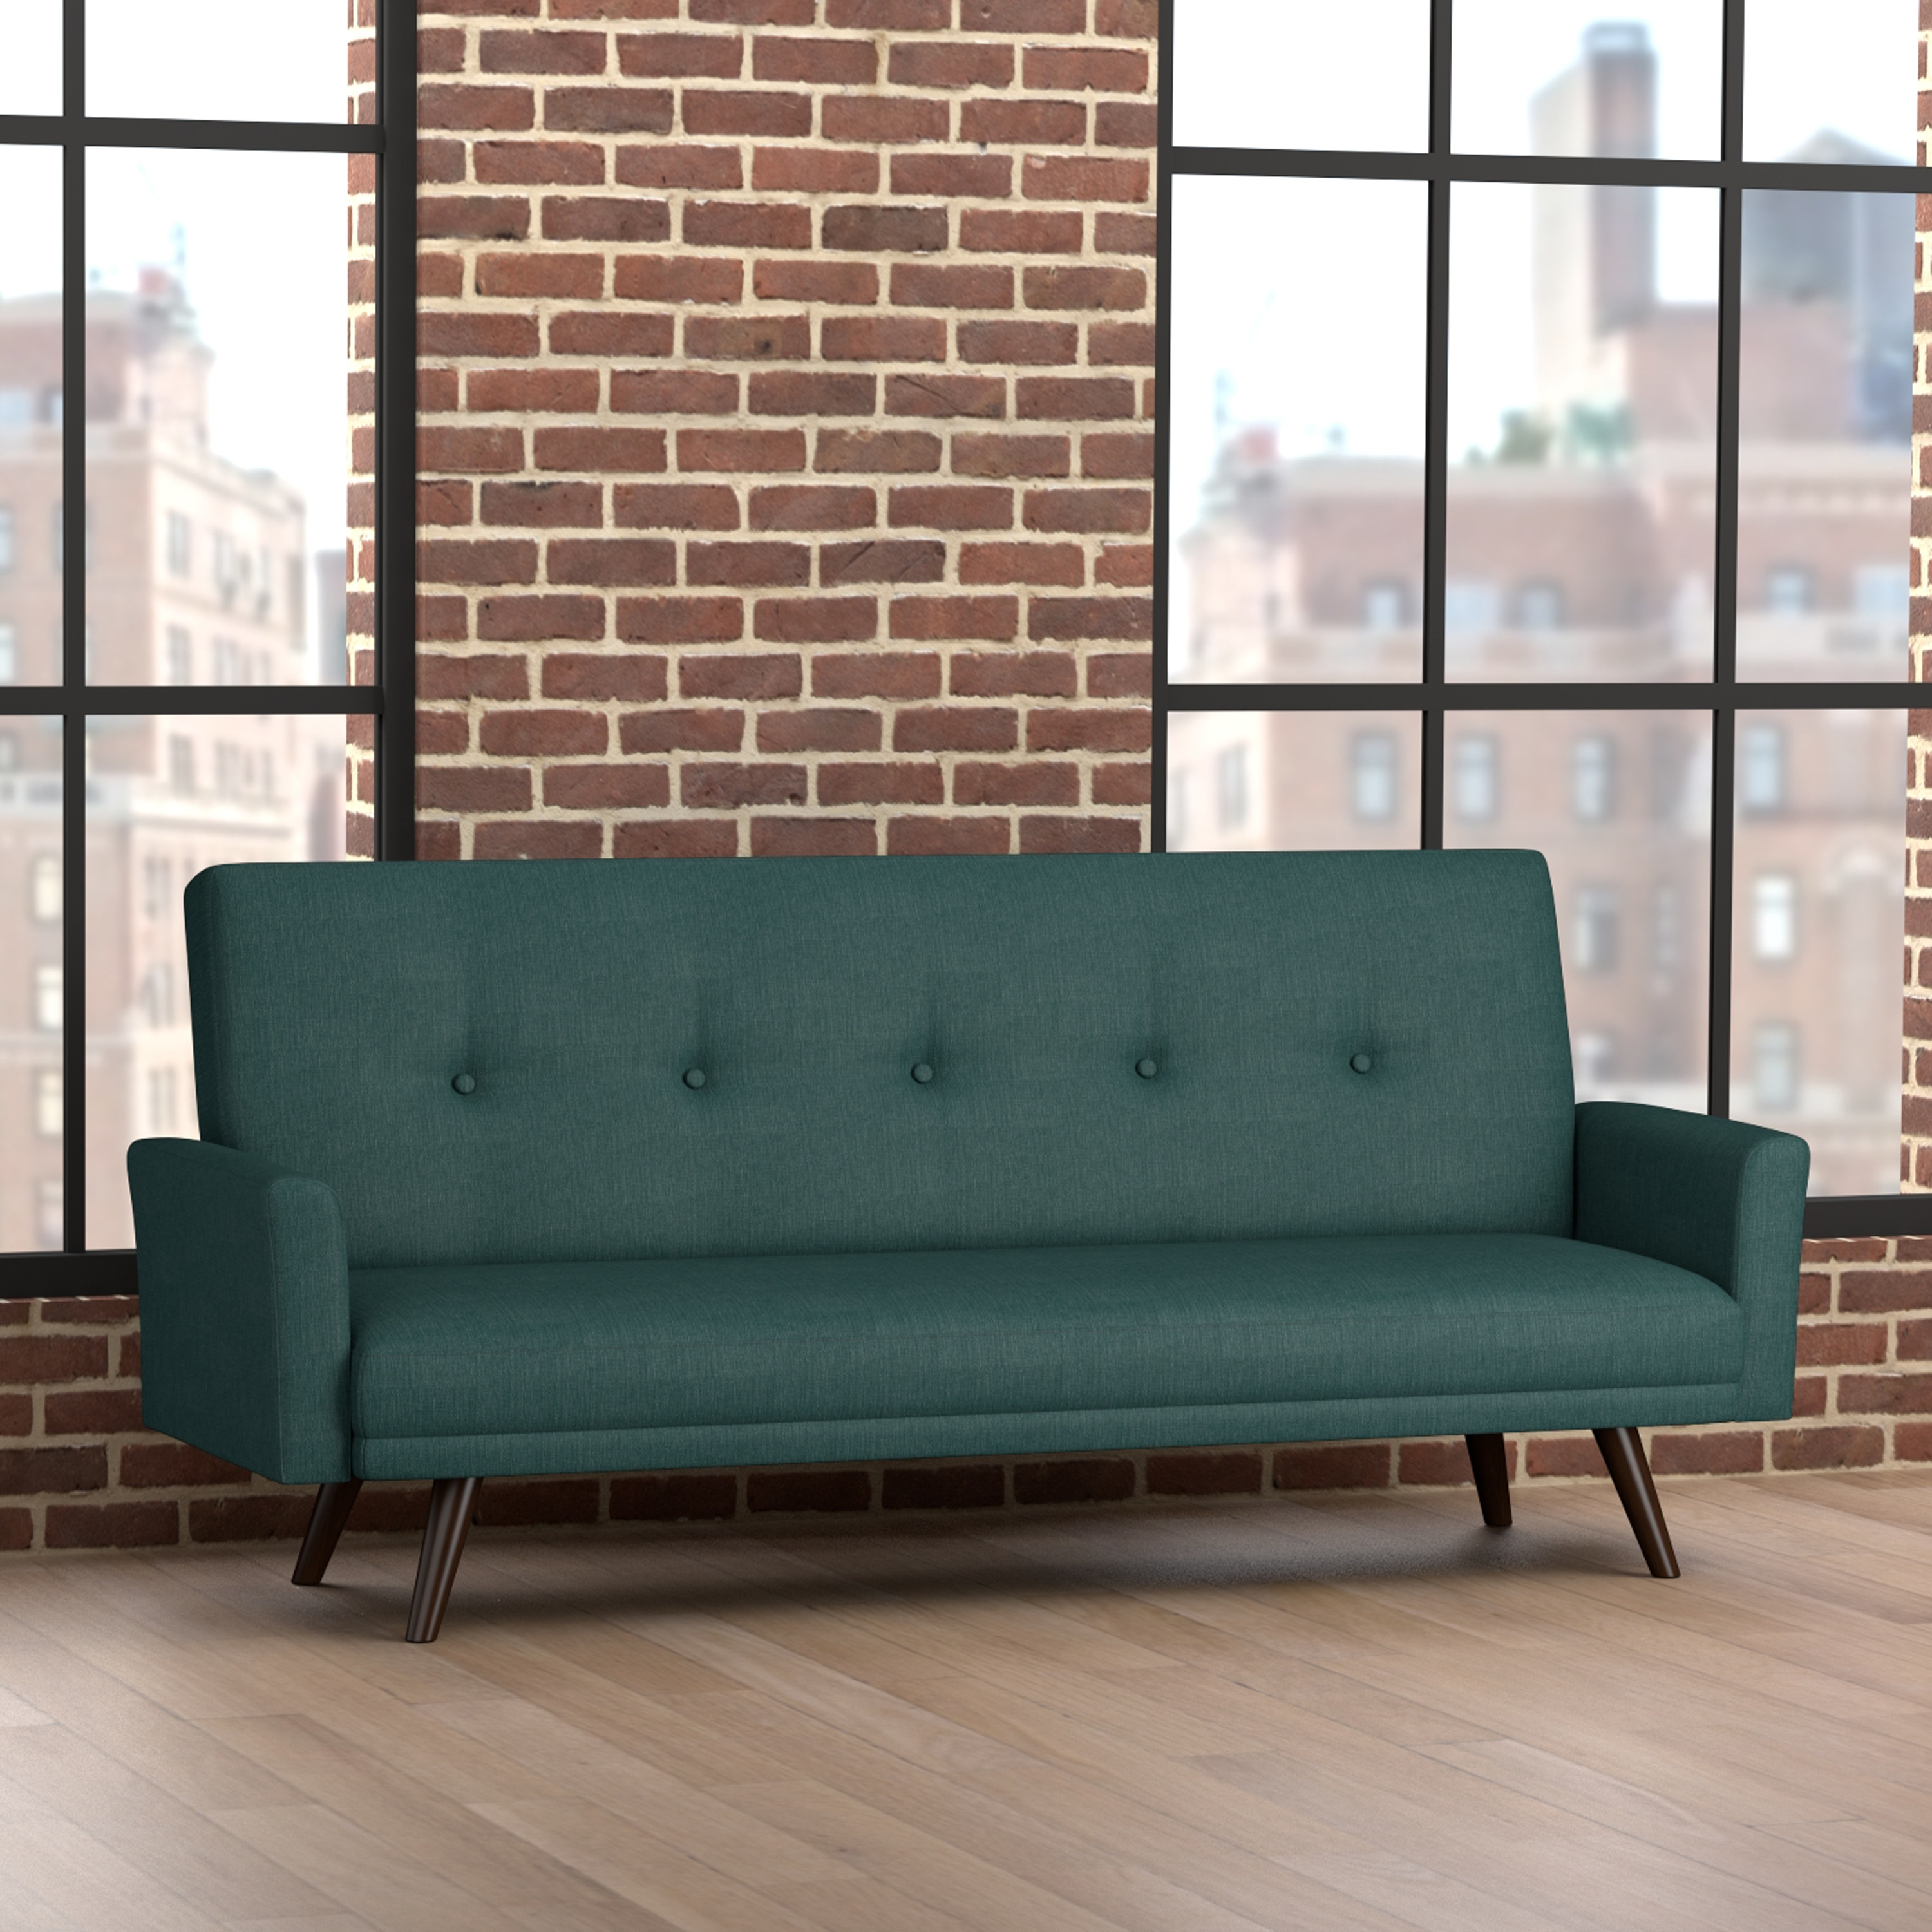 Handy Living  Milliken Click Clack Peacock Blue Futon Sleeper Sofa